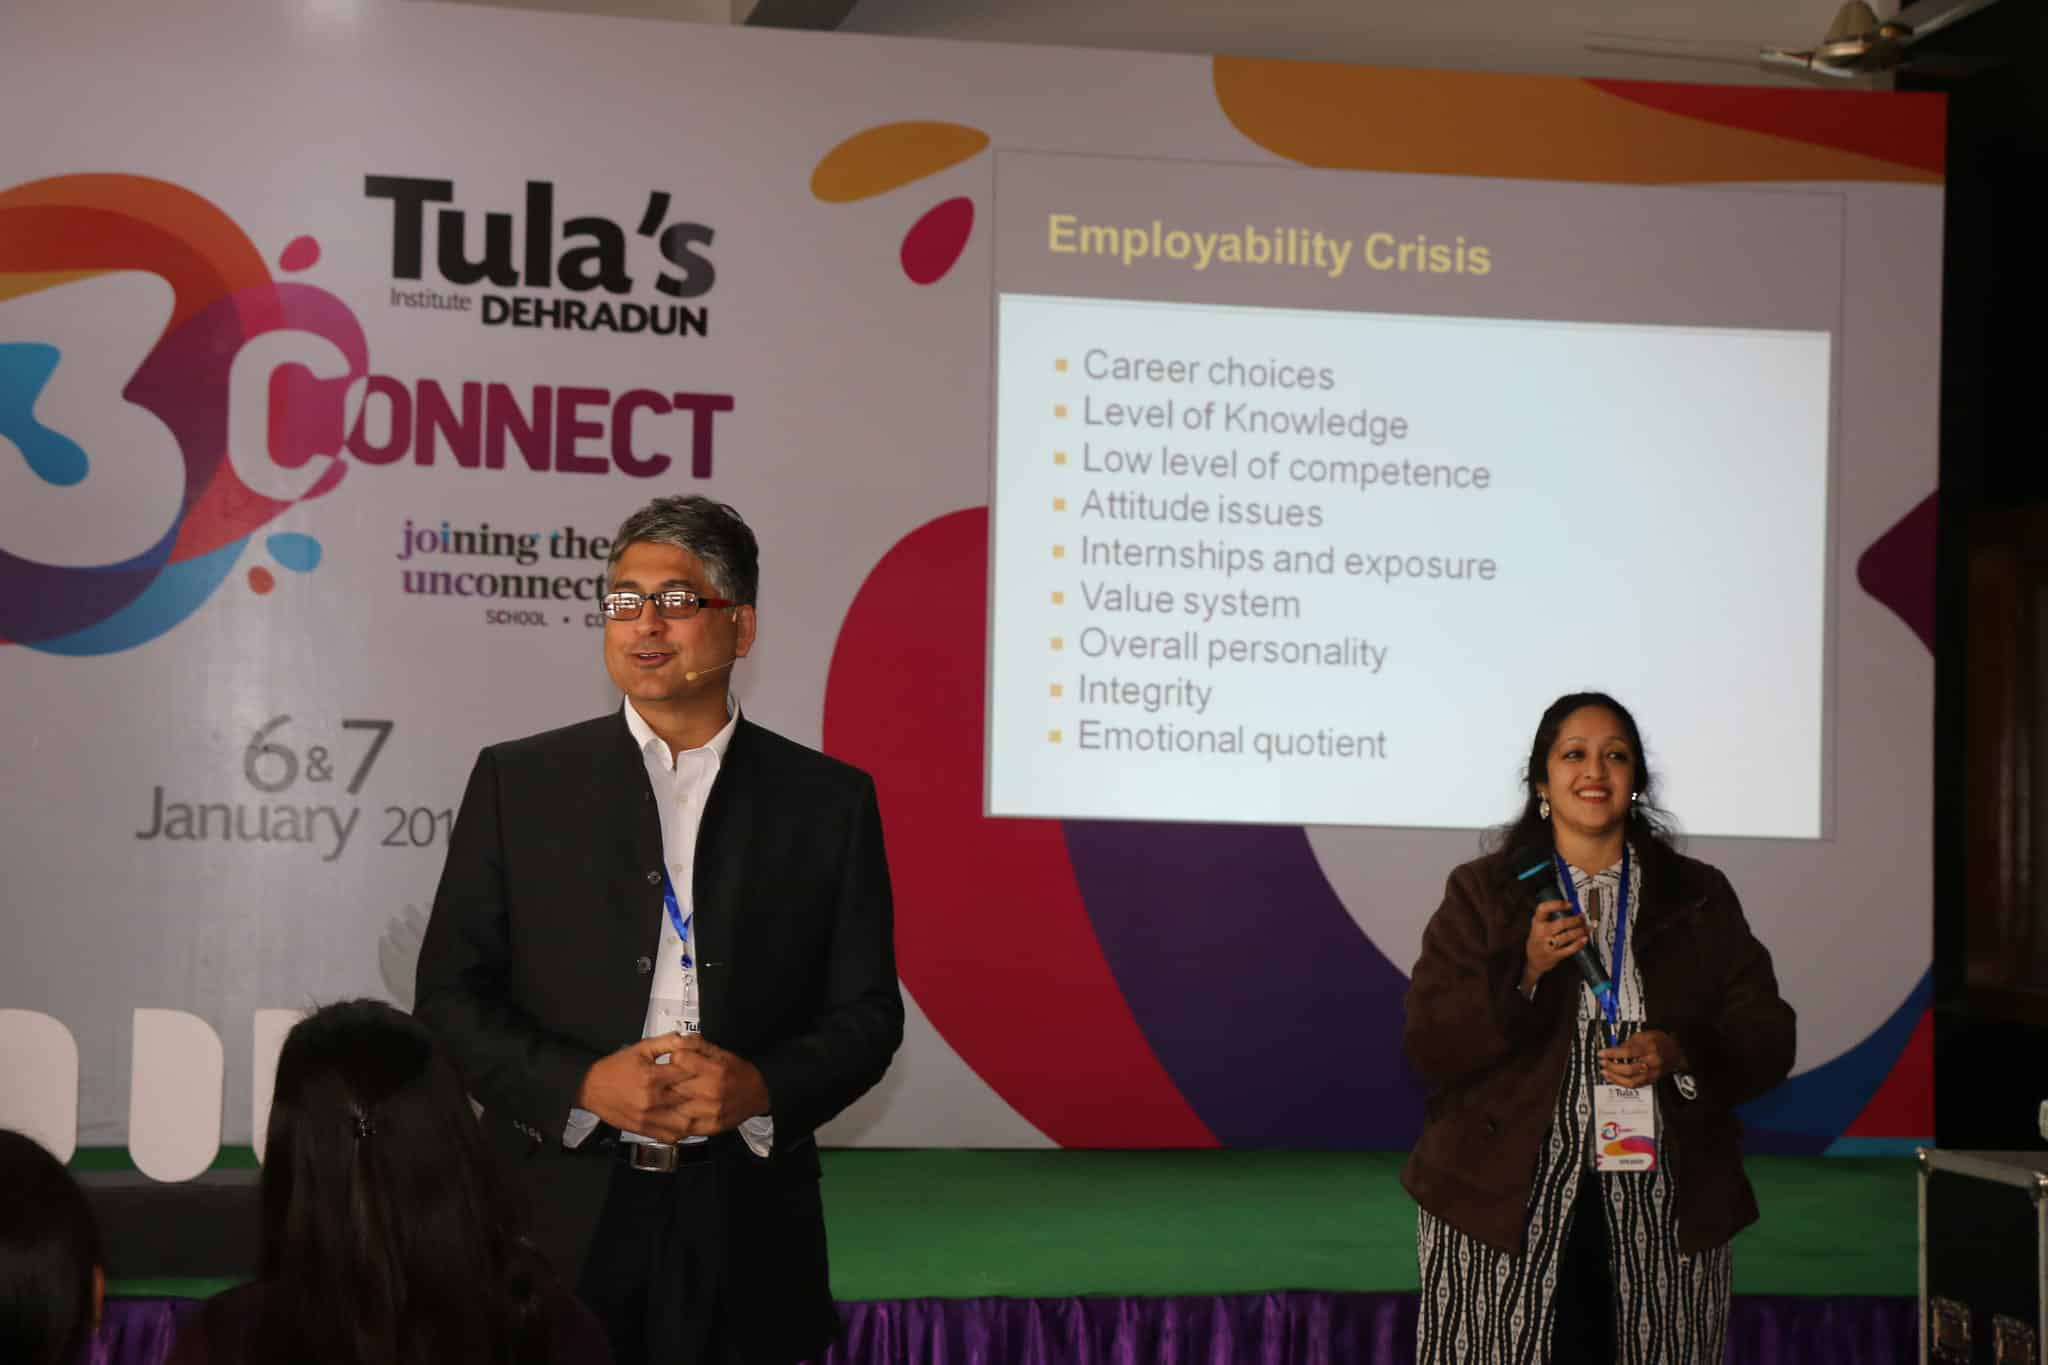 tulas 3 connect